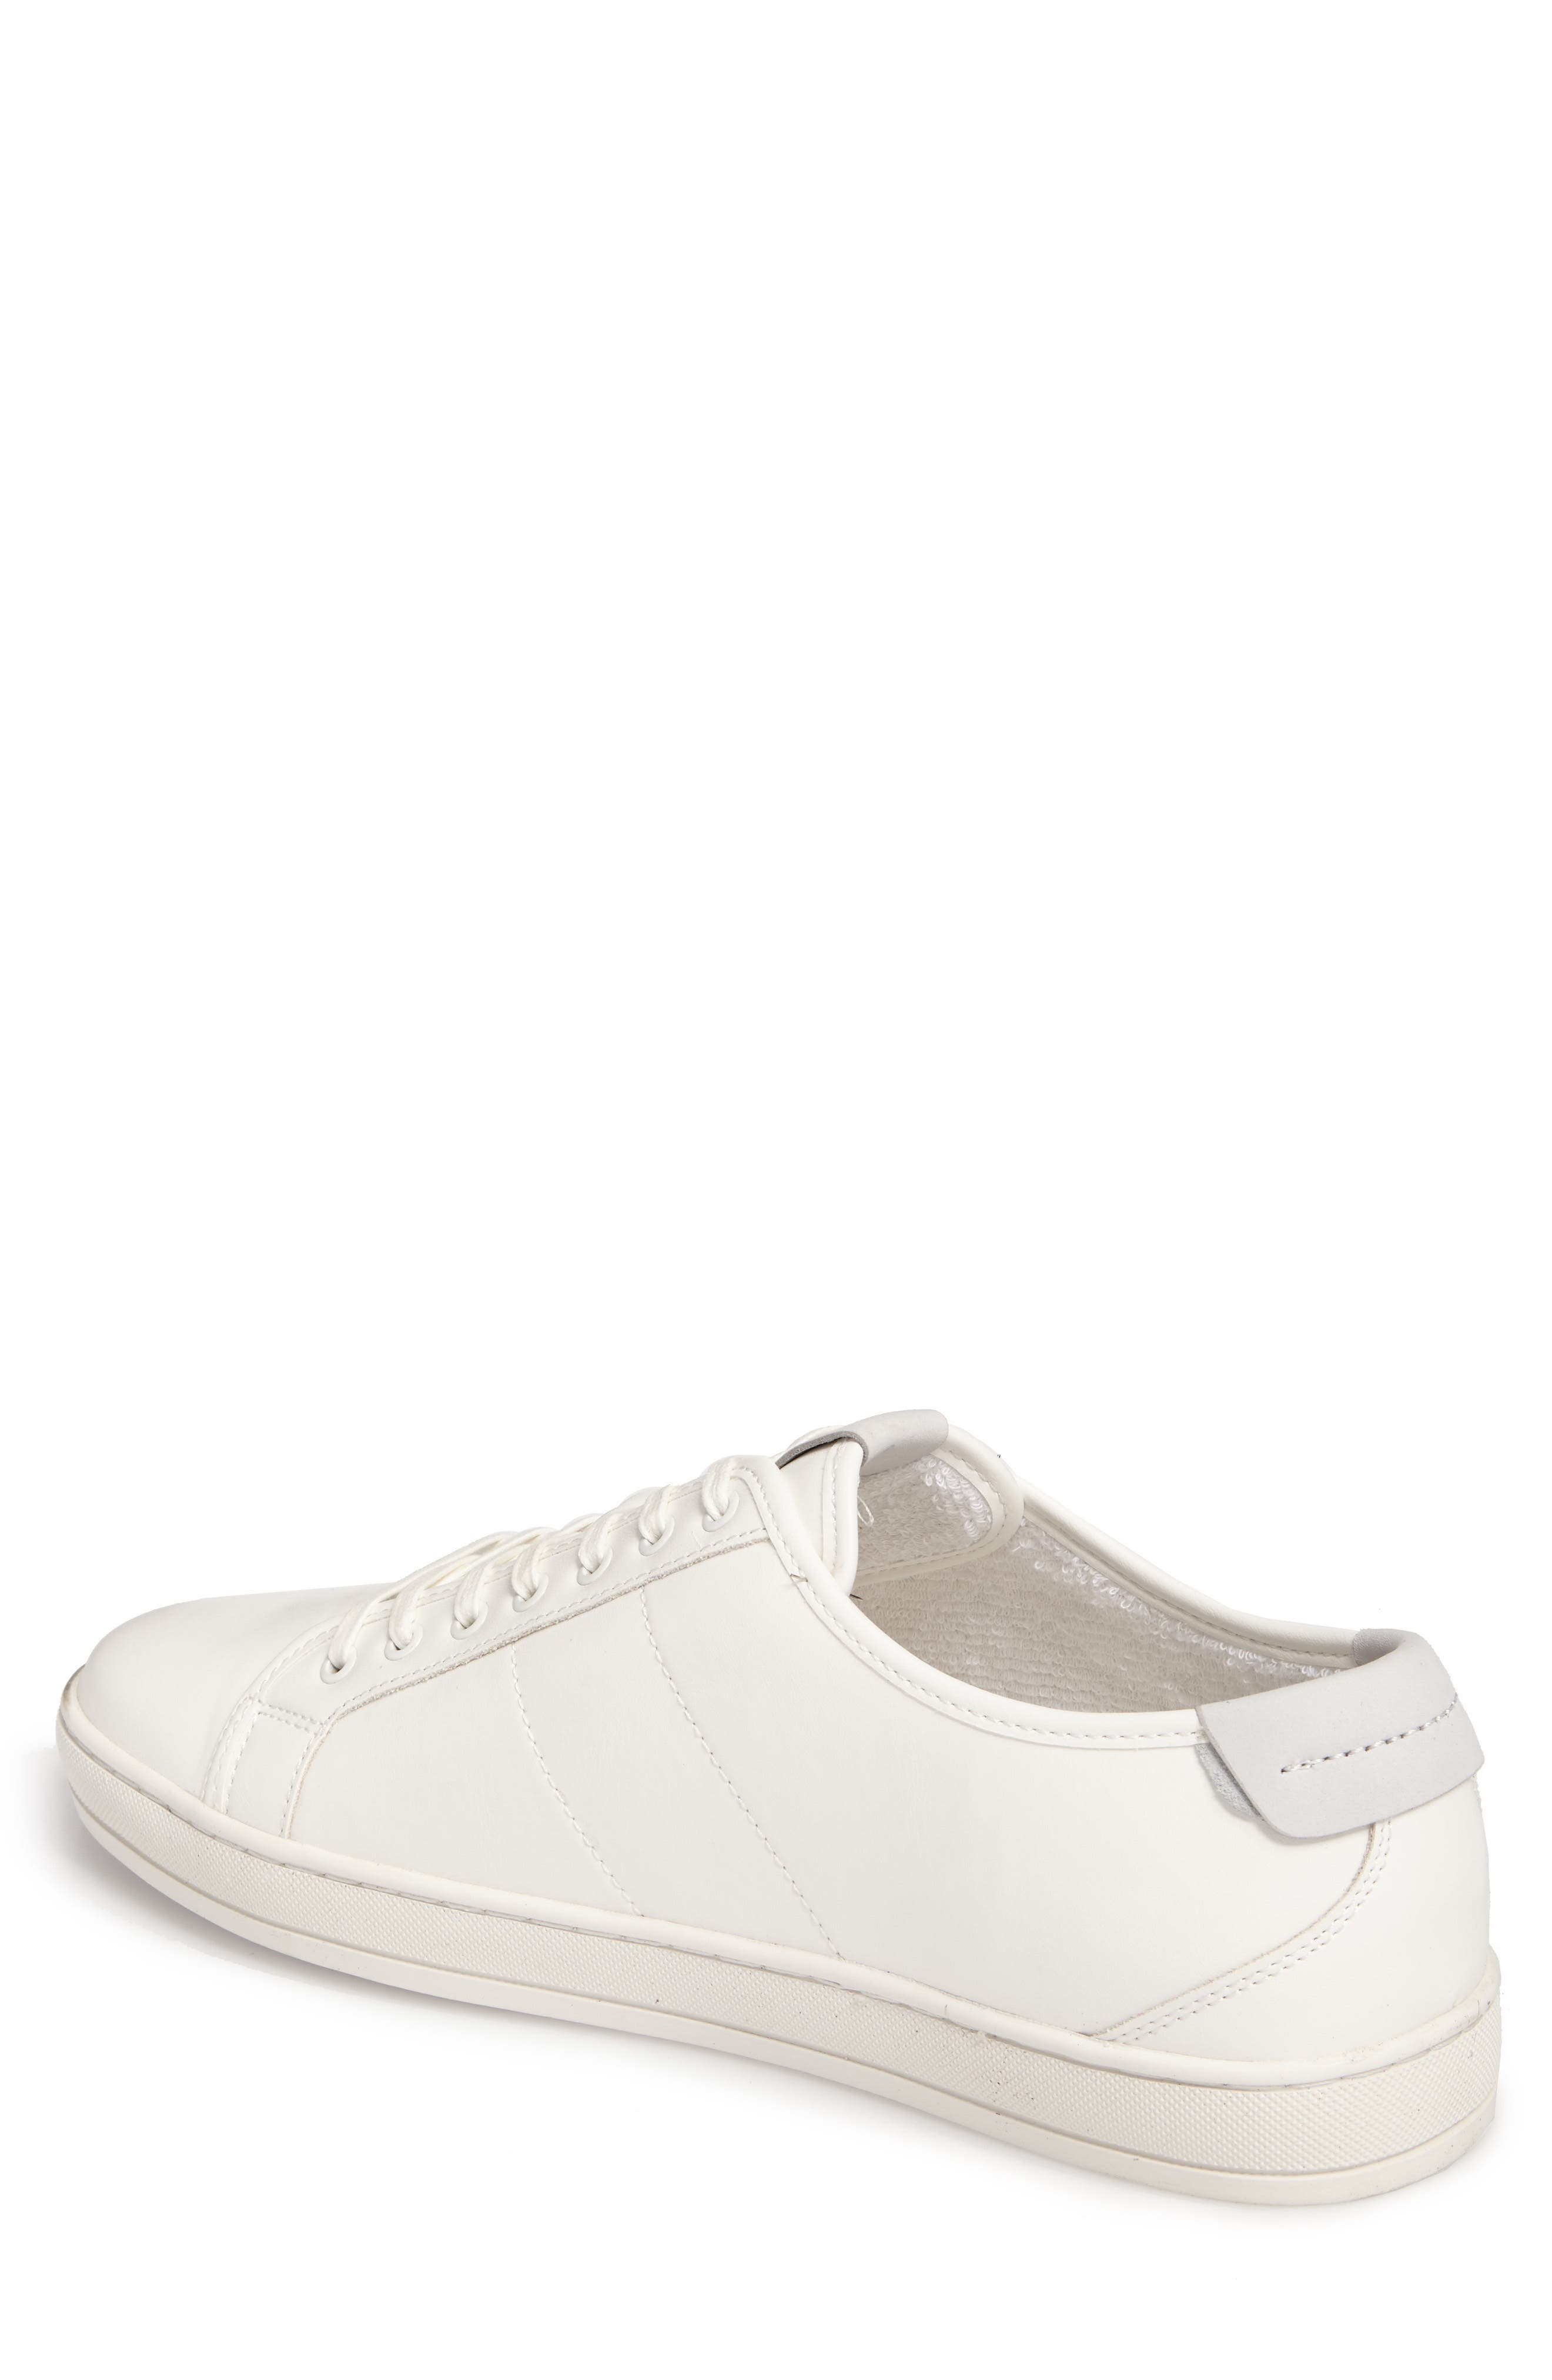 Delello Low-Top Sneaker,                             Alternate thumbnail 2, color,                             White